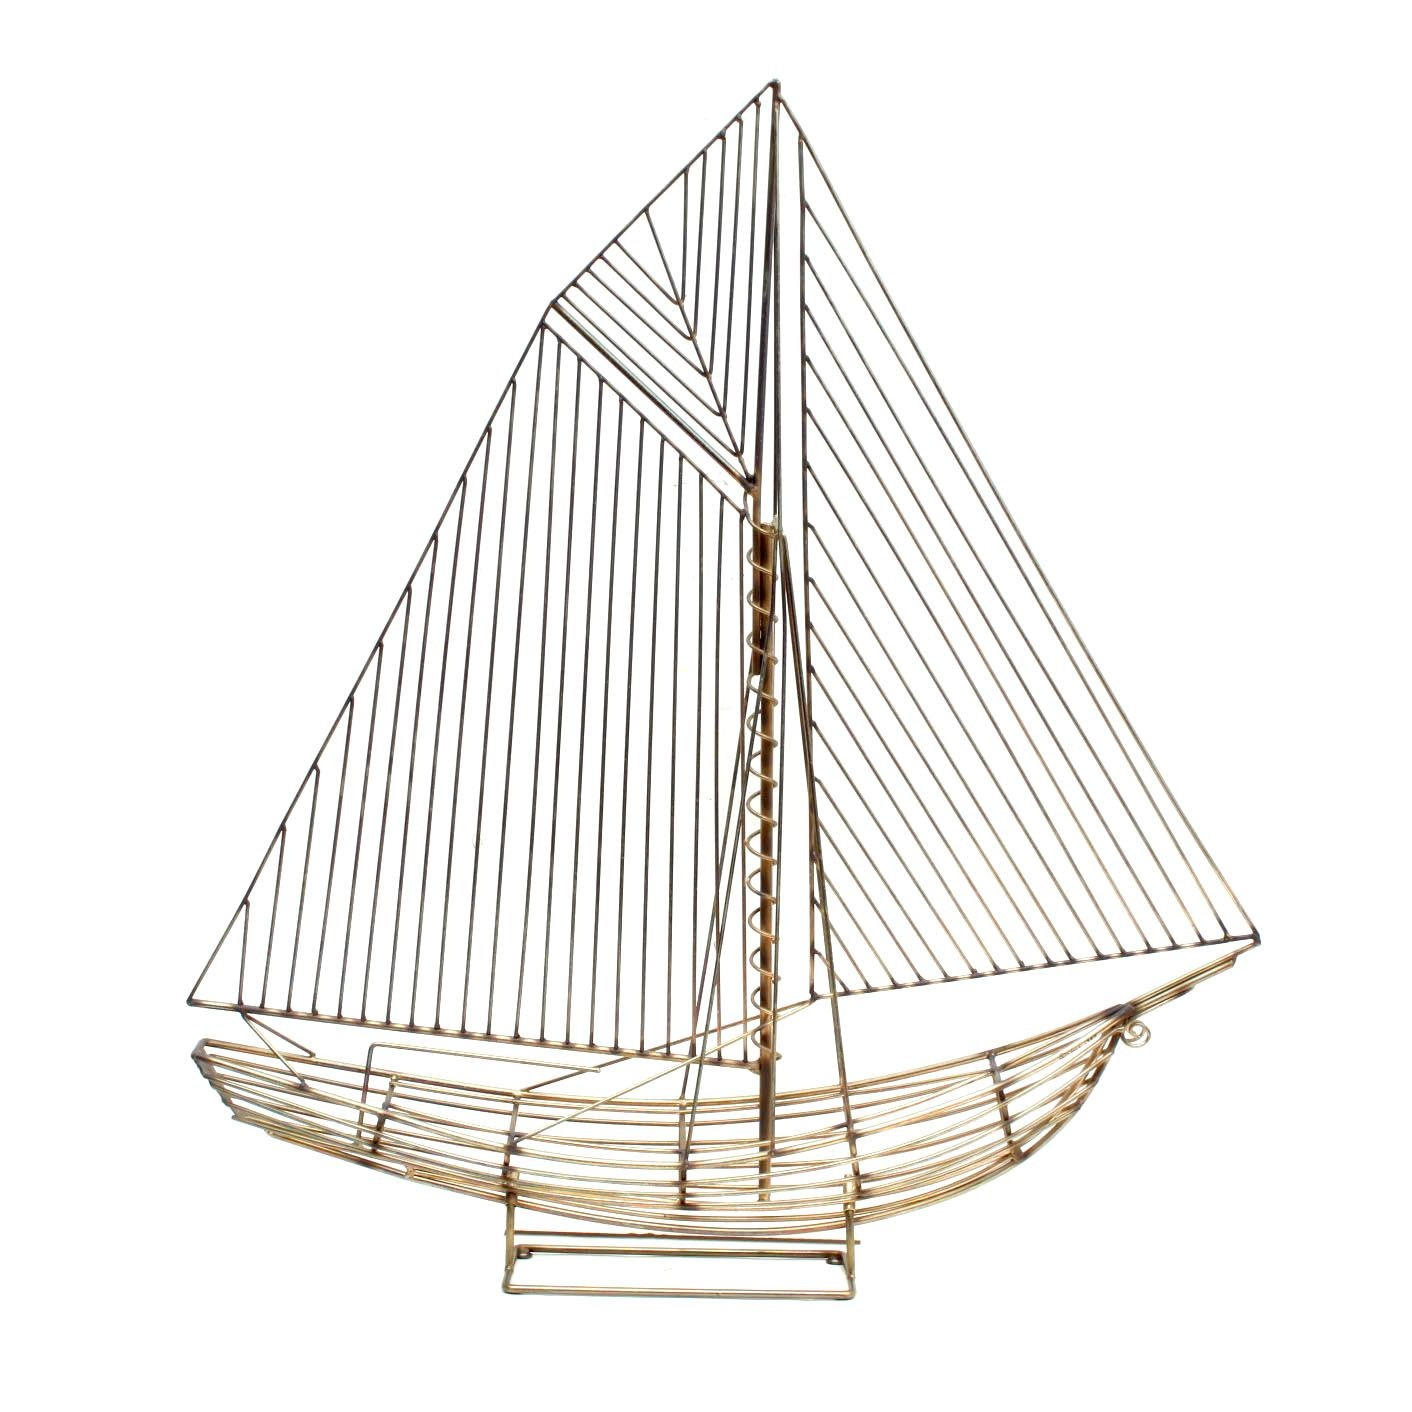 Curtis Jeré Brass Wireframe Sloop Ship Sculpture